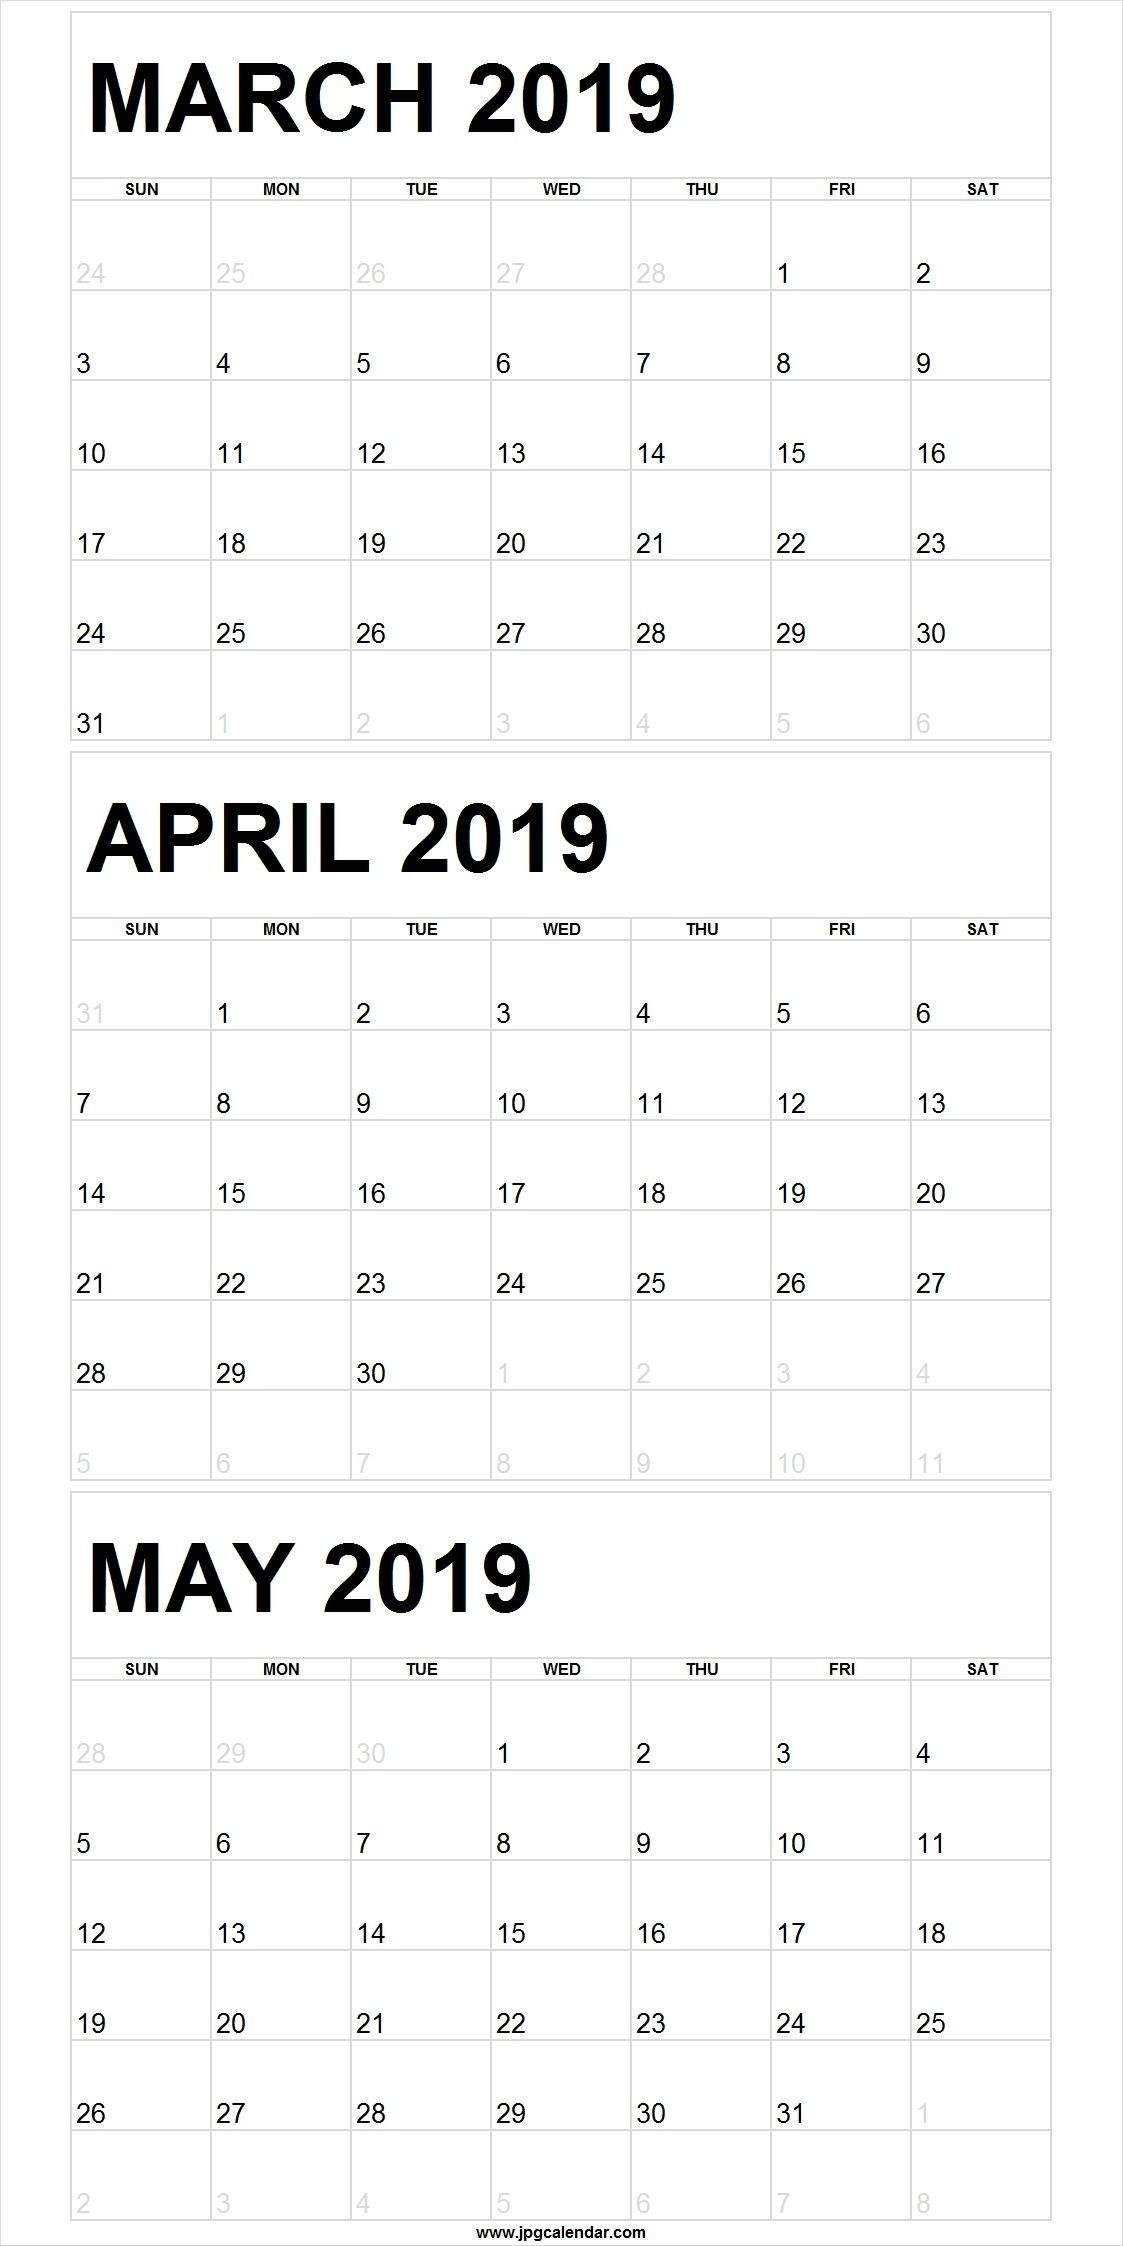 Blank March To May 2019 Calendar Printable #march #april #may pertaining to 3 Month Planning Calendar Printable